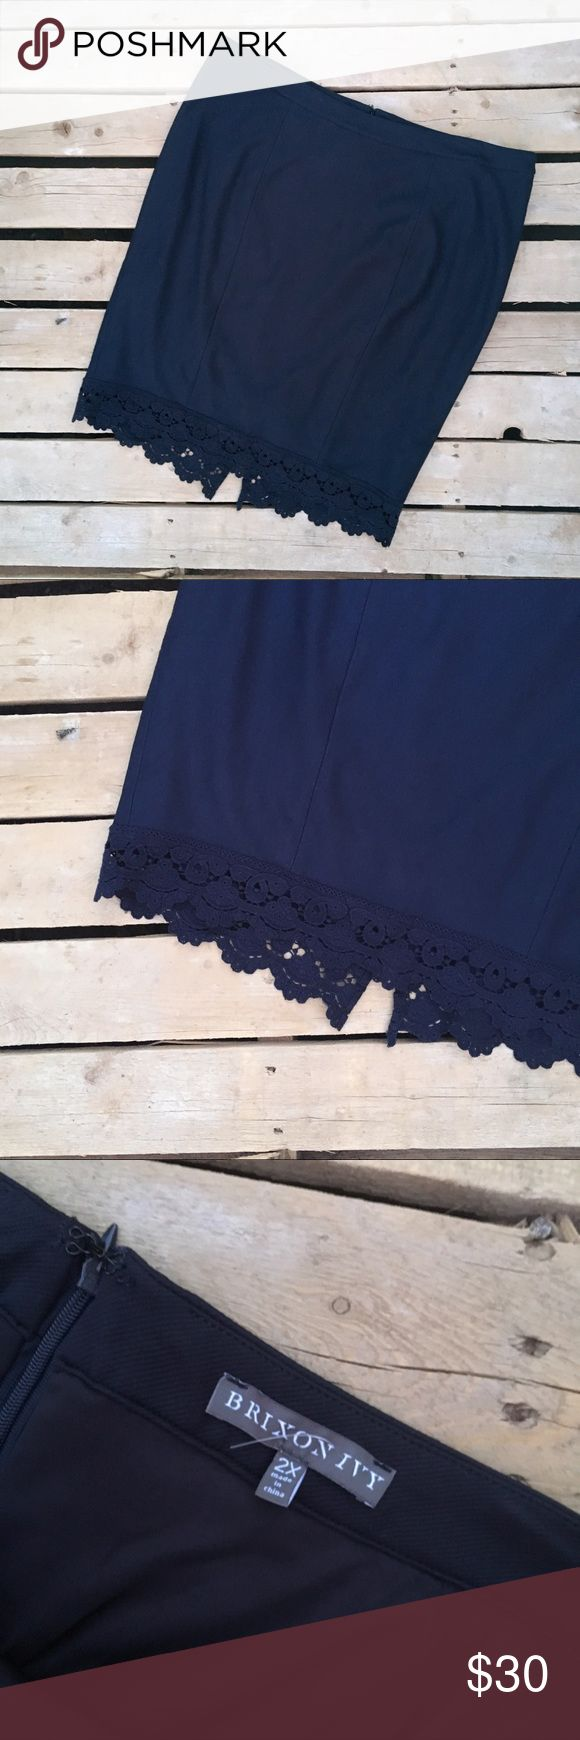 BRIXON IVY STICH FIX navy pencil skirt Lace 2x New without tags  This is from a Stitch Fix Collection  Bundle and save I'll send a private offer after you bundle.  BRIXON IVY Skirts Pencil